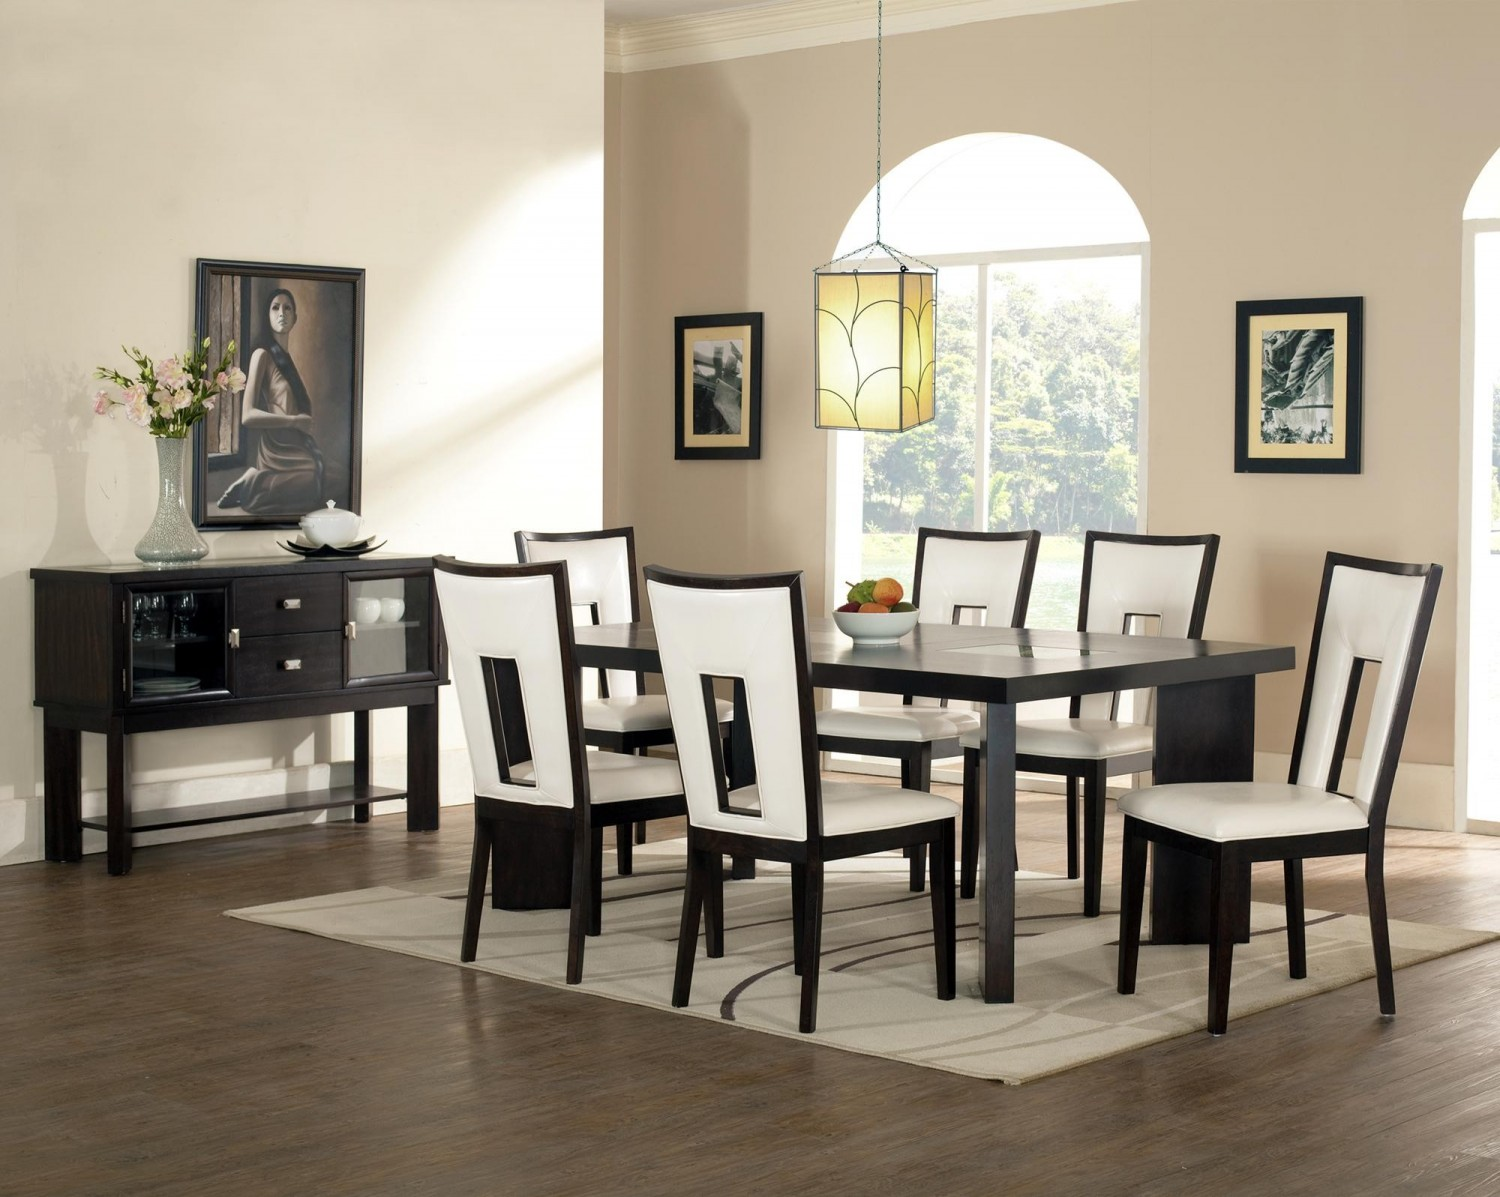 modern dining room ideas white squares 1500x1197 modern dining room ideas white squares